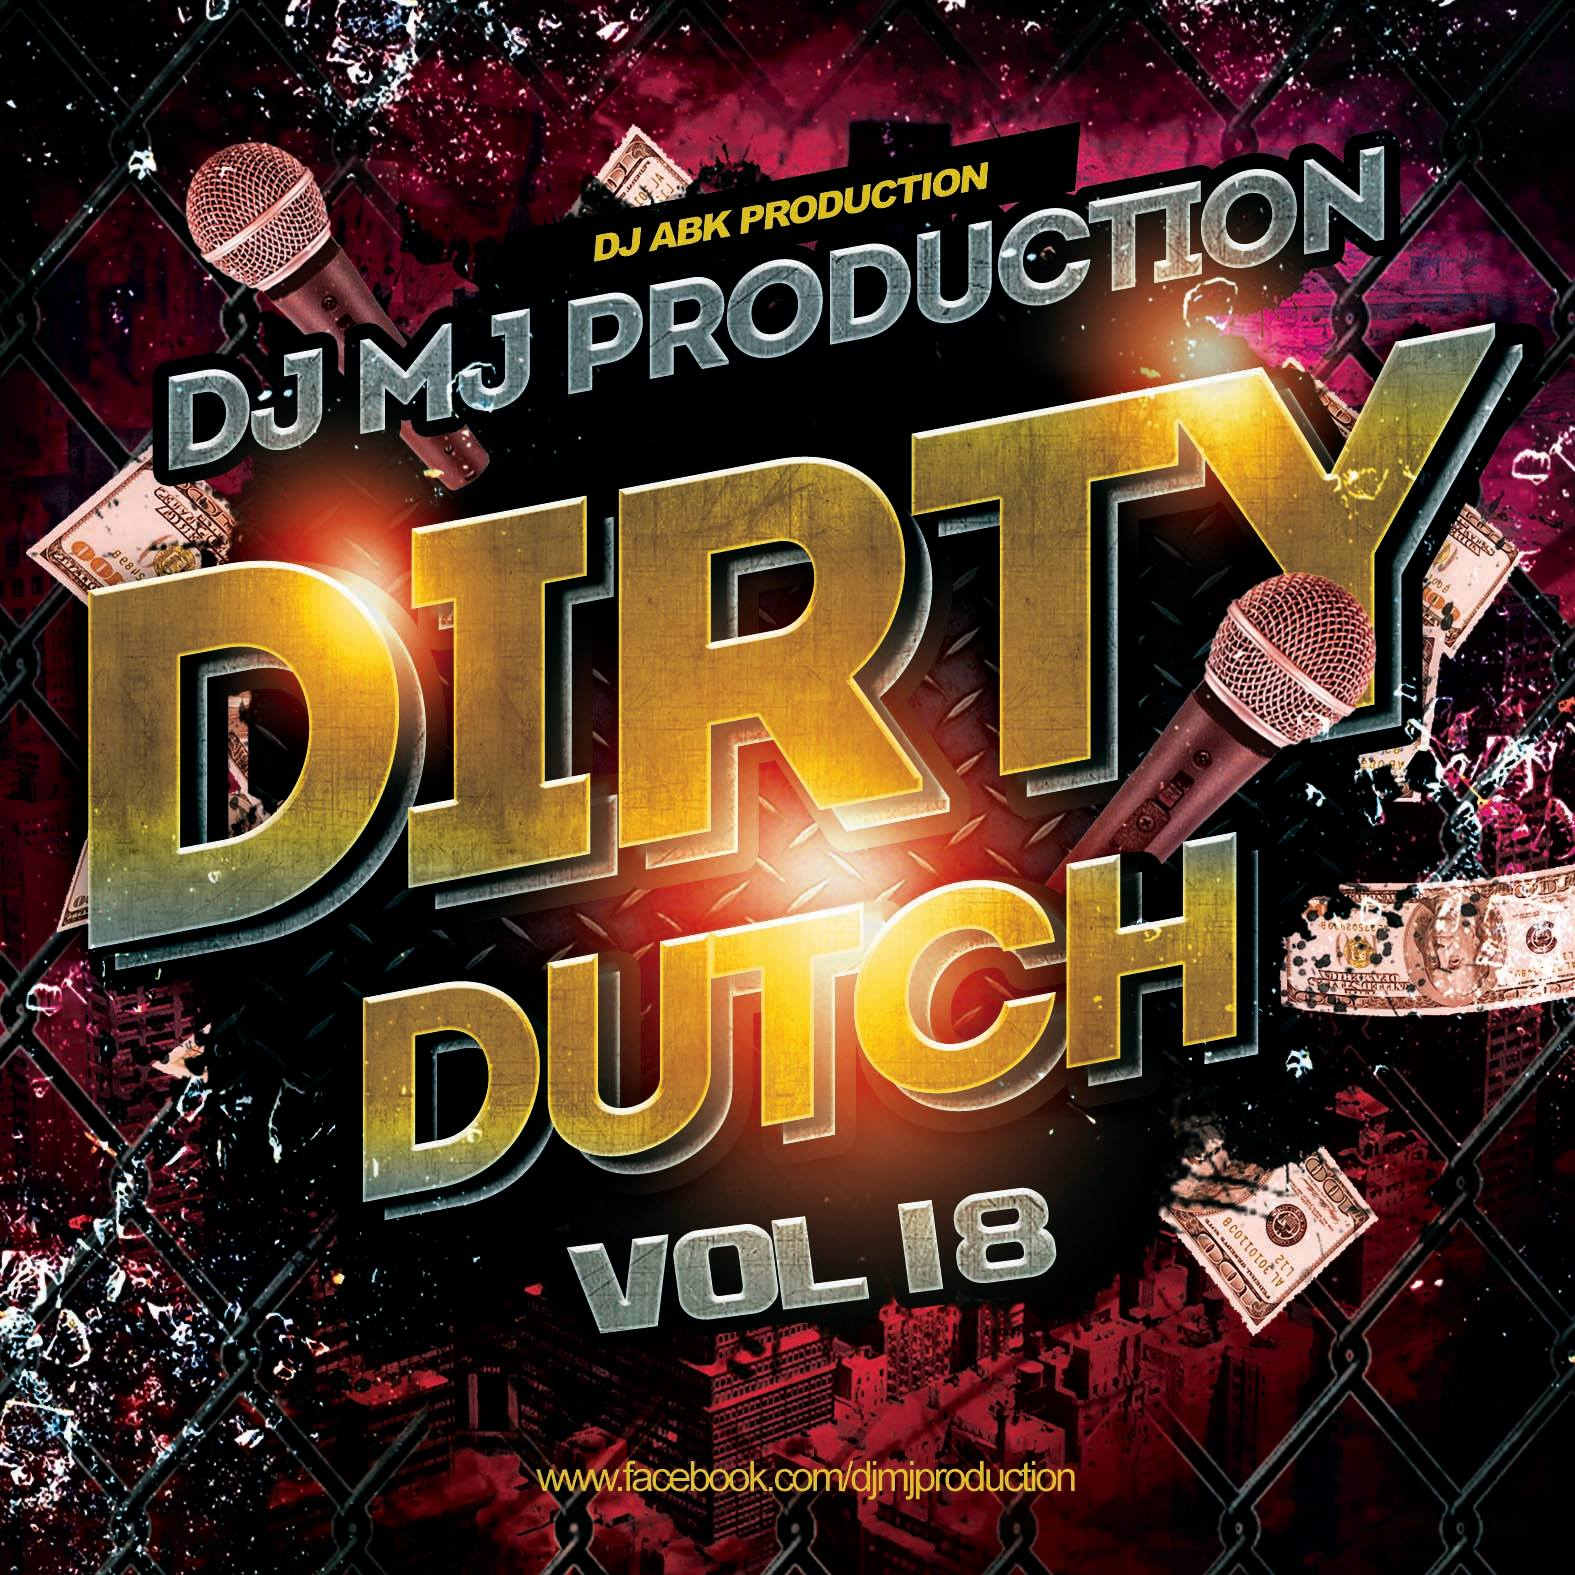 Dirty Dutch Vol.18 - DJ MJ Production